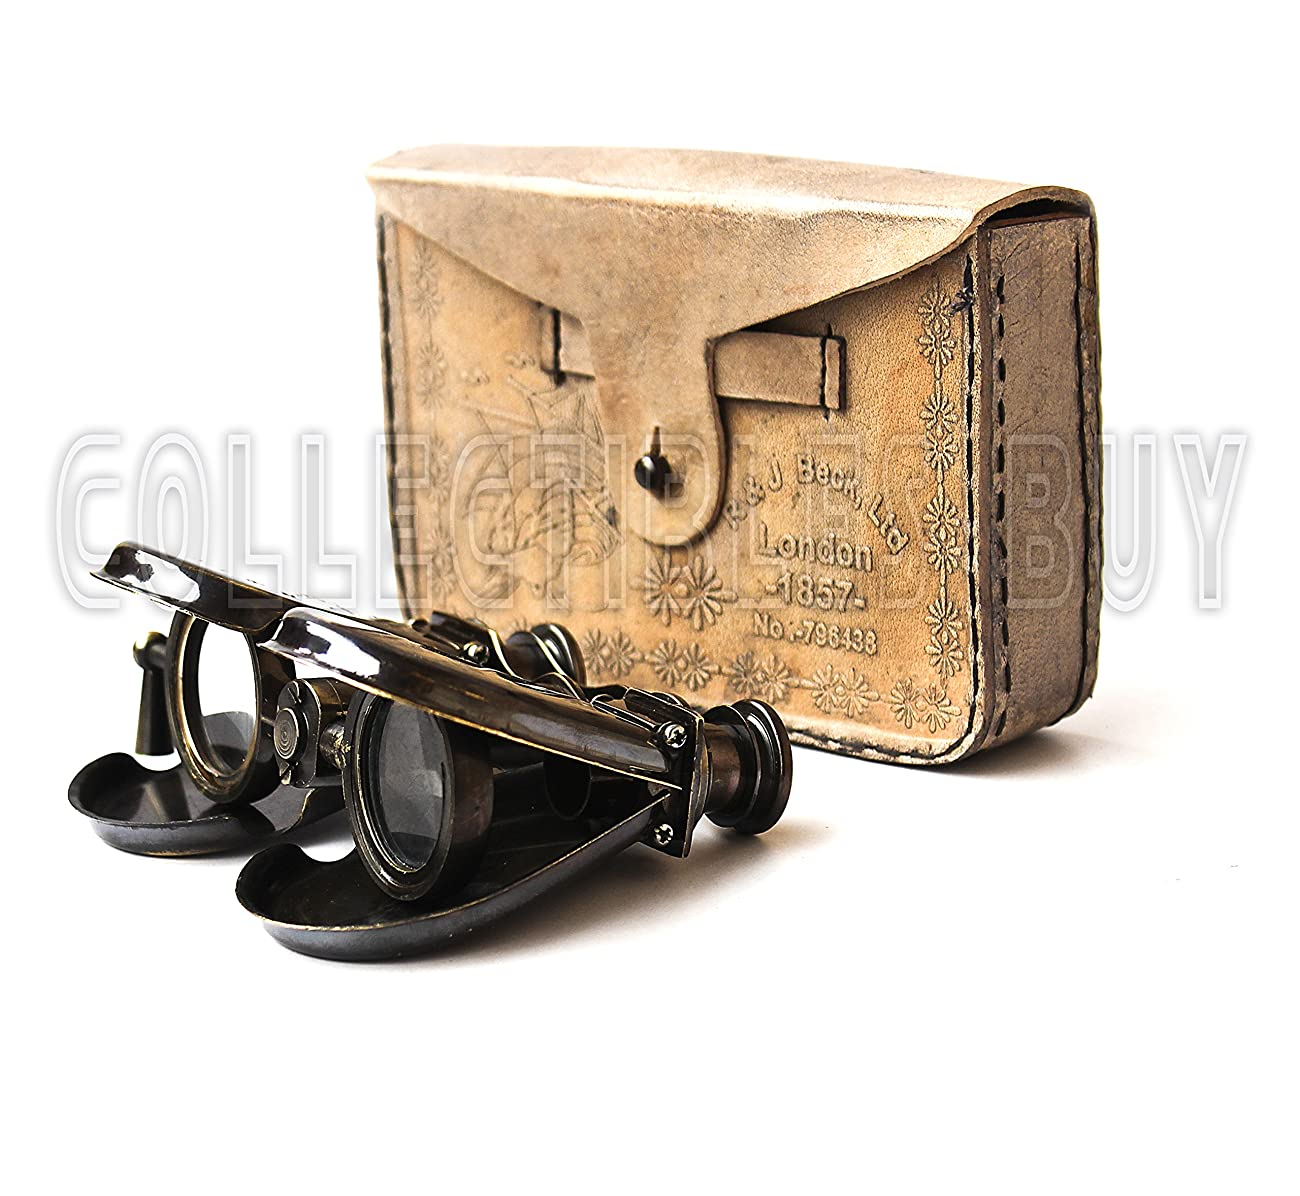 Classic Marine Spy Glass Antique London 1857 R & J Beck Brass Binocular Collectibles Gift 0